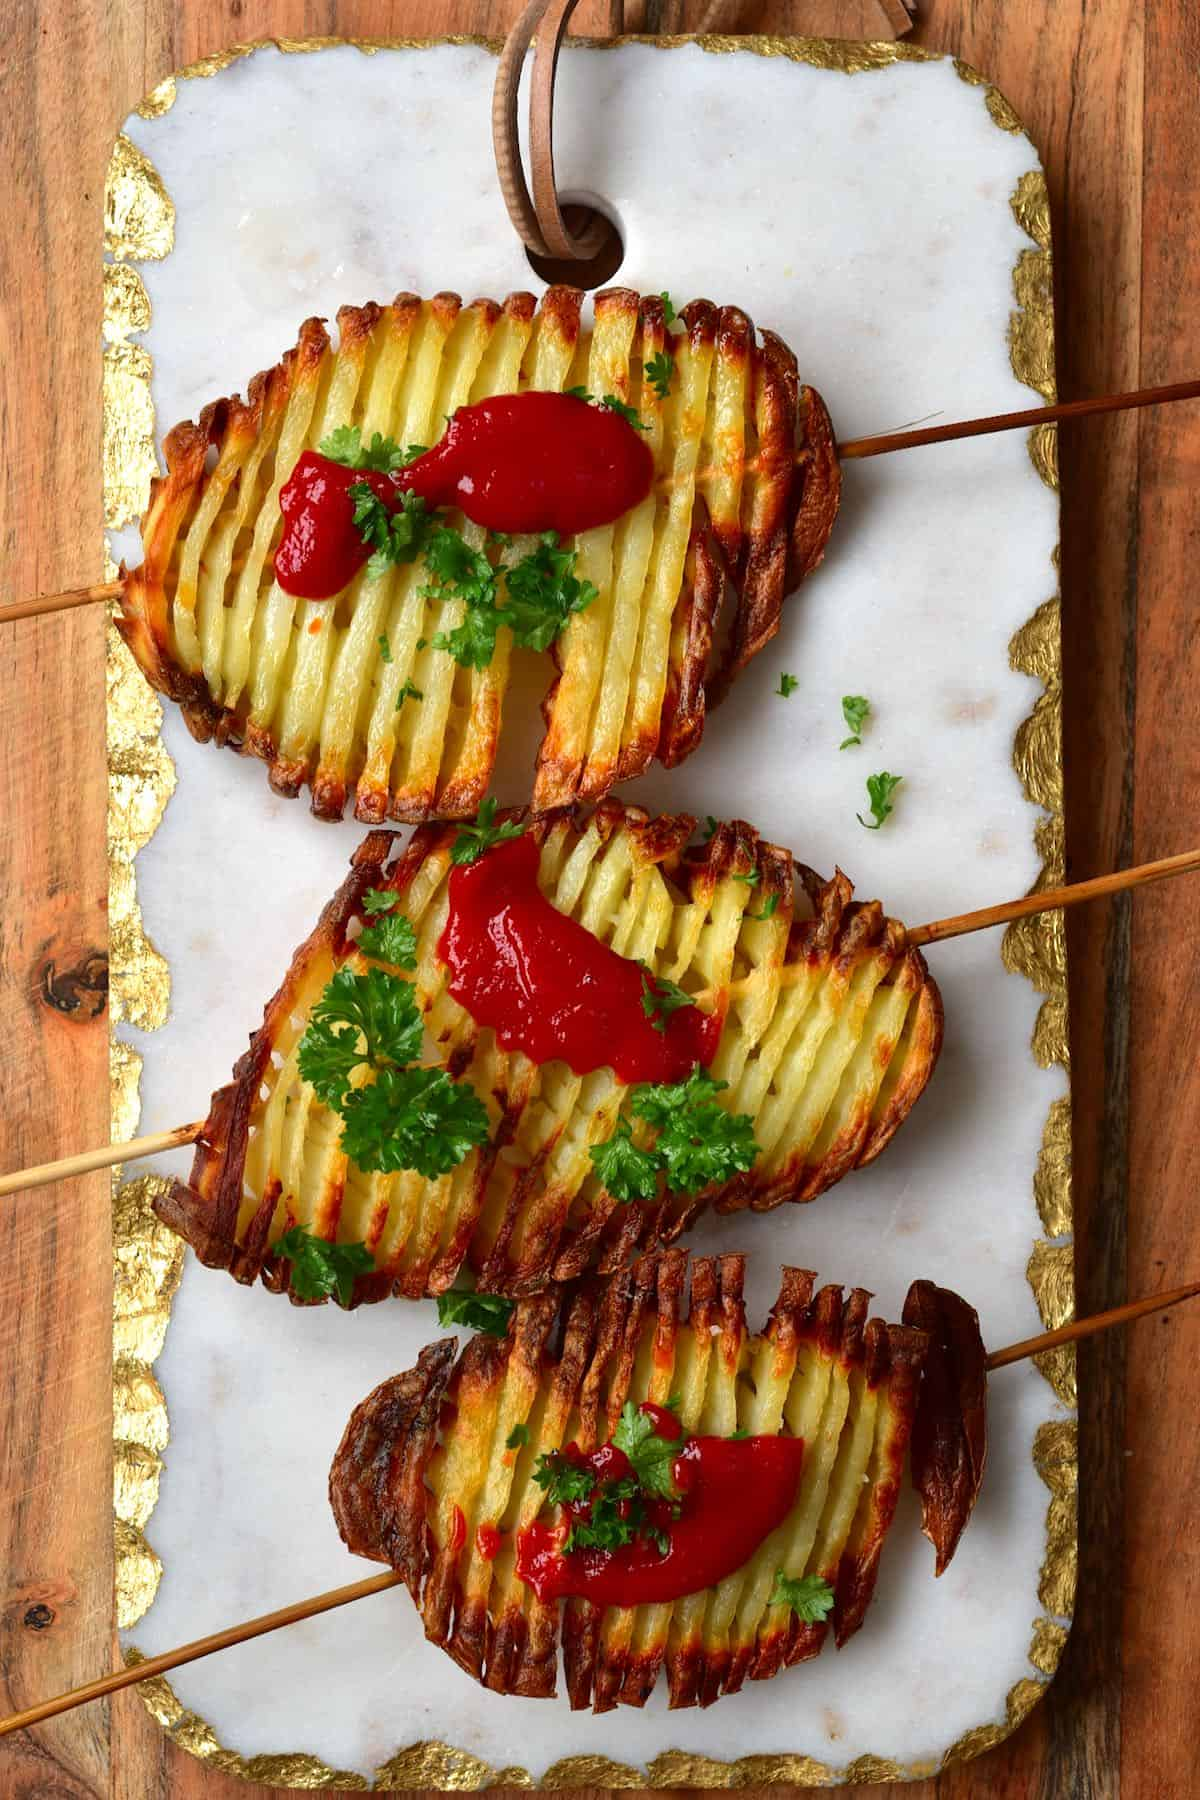 Three accordion potato chips on skewers topped with some parsley and ketchup